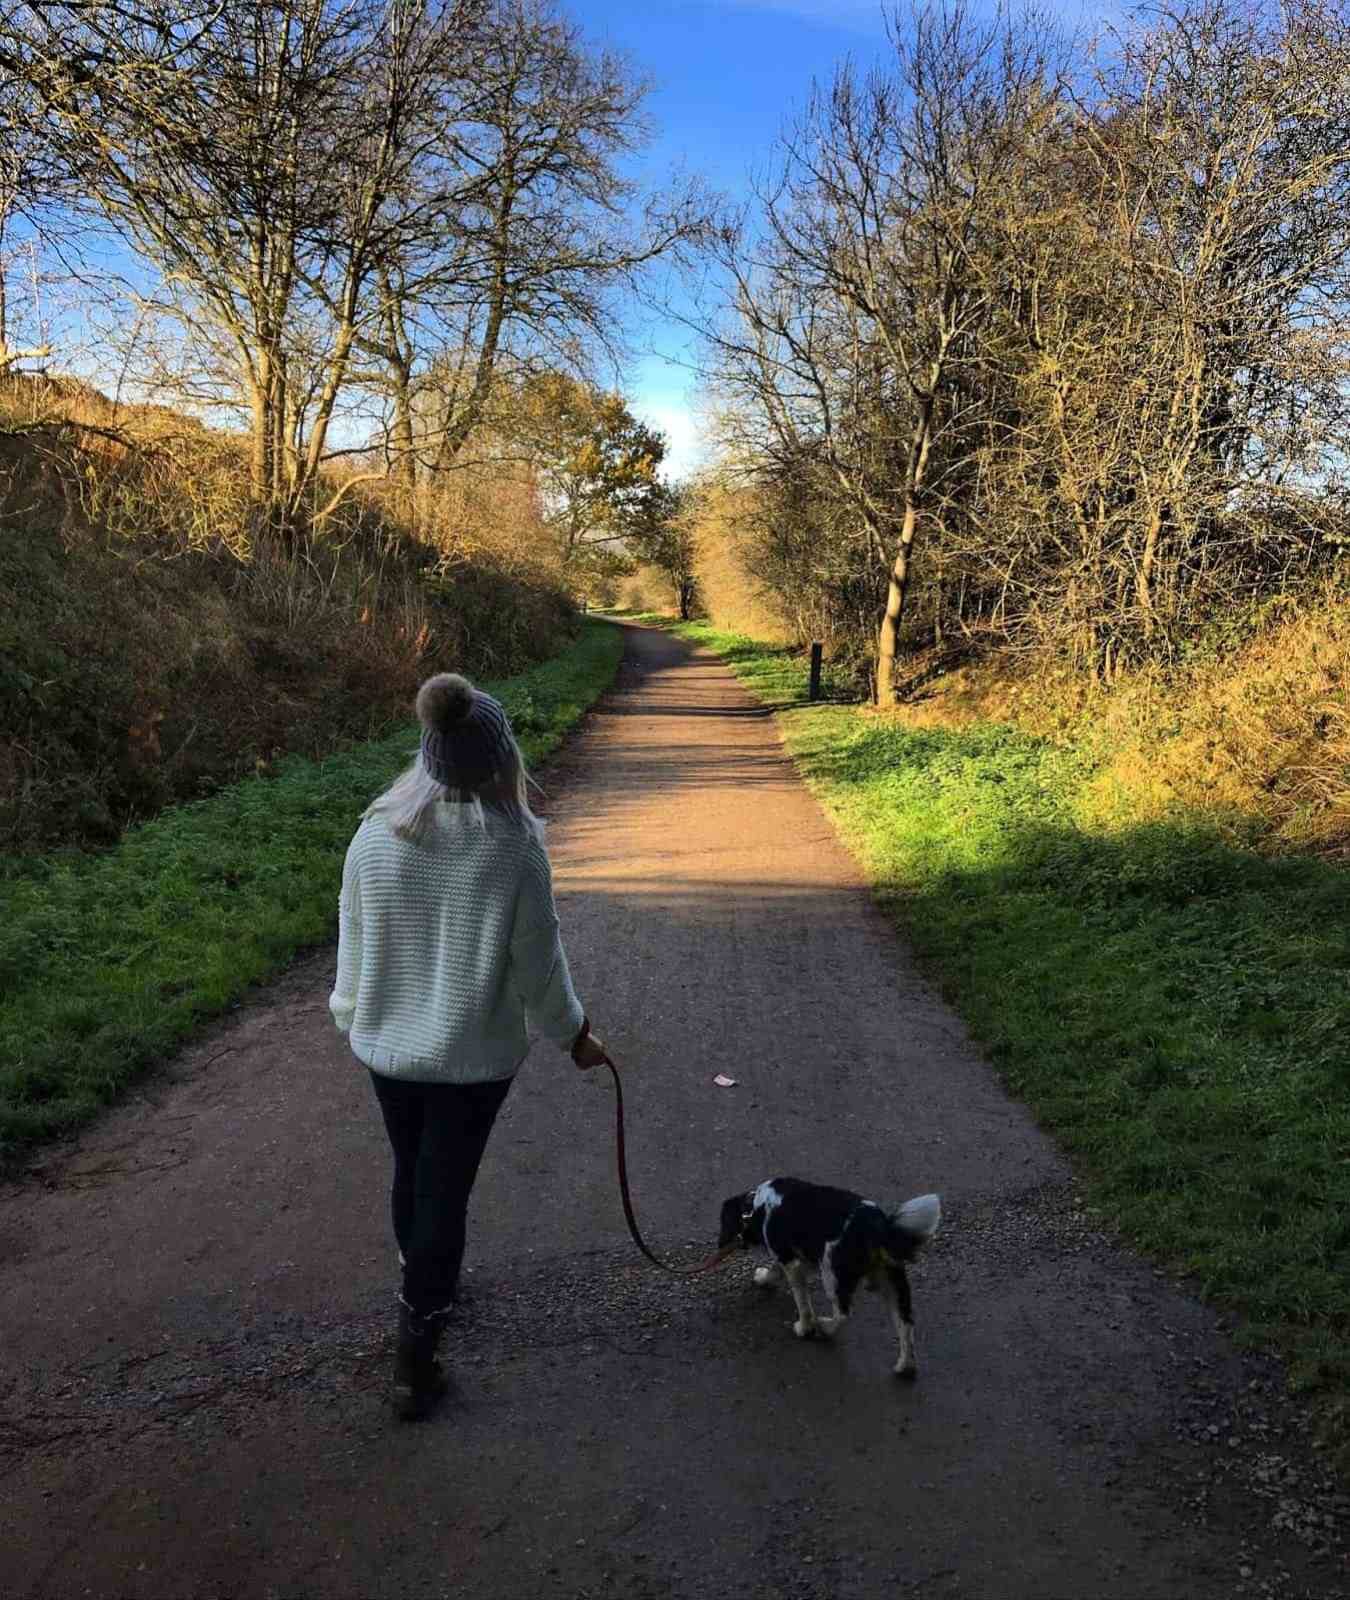 Lady walking a dog along a path in wooly hat and jumper